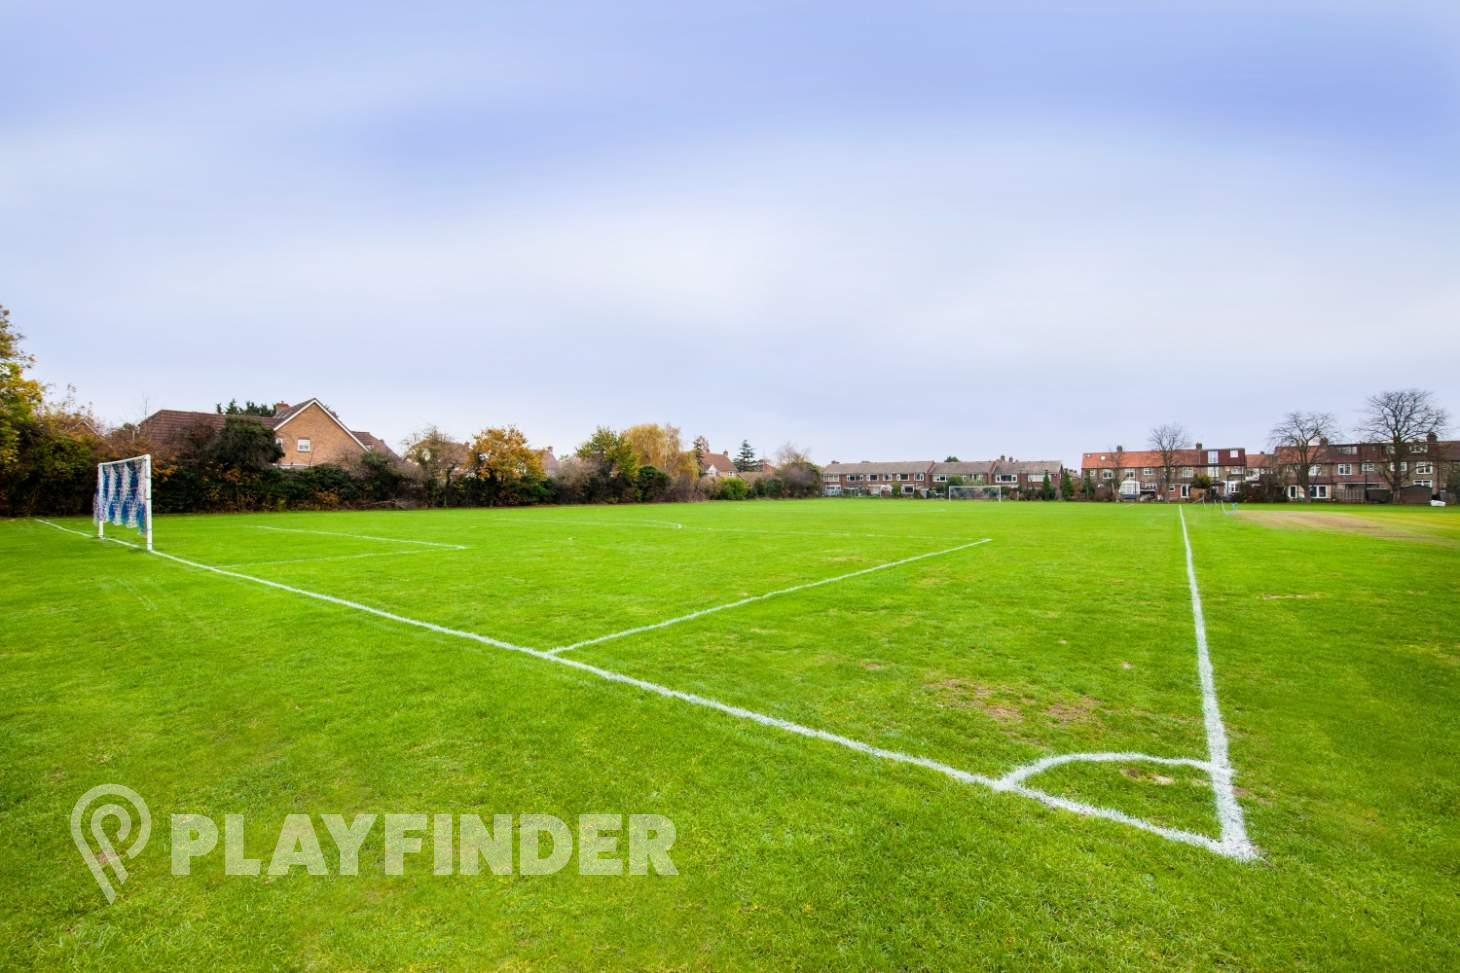 Jubilee Sports Ground, Waltham Forest 11 a side | Grass football pitch